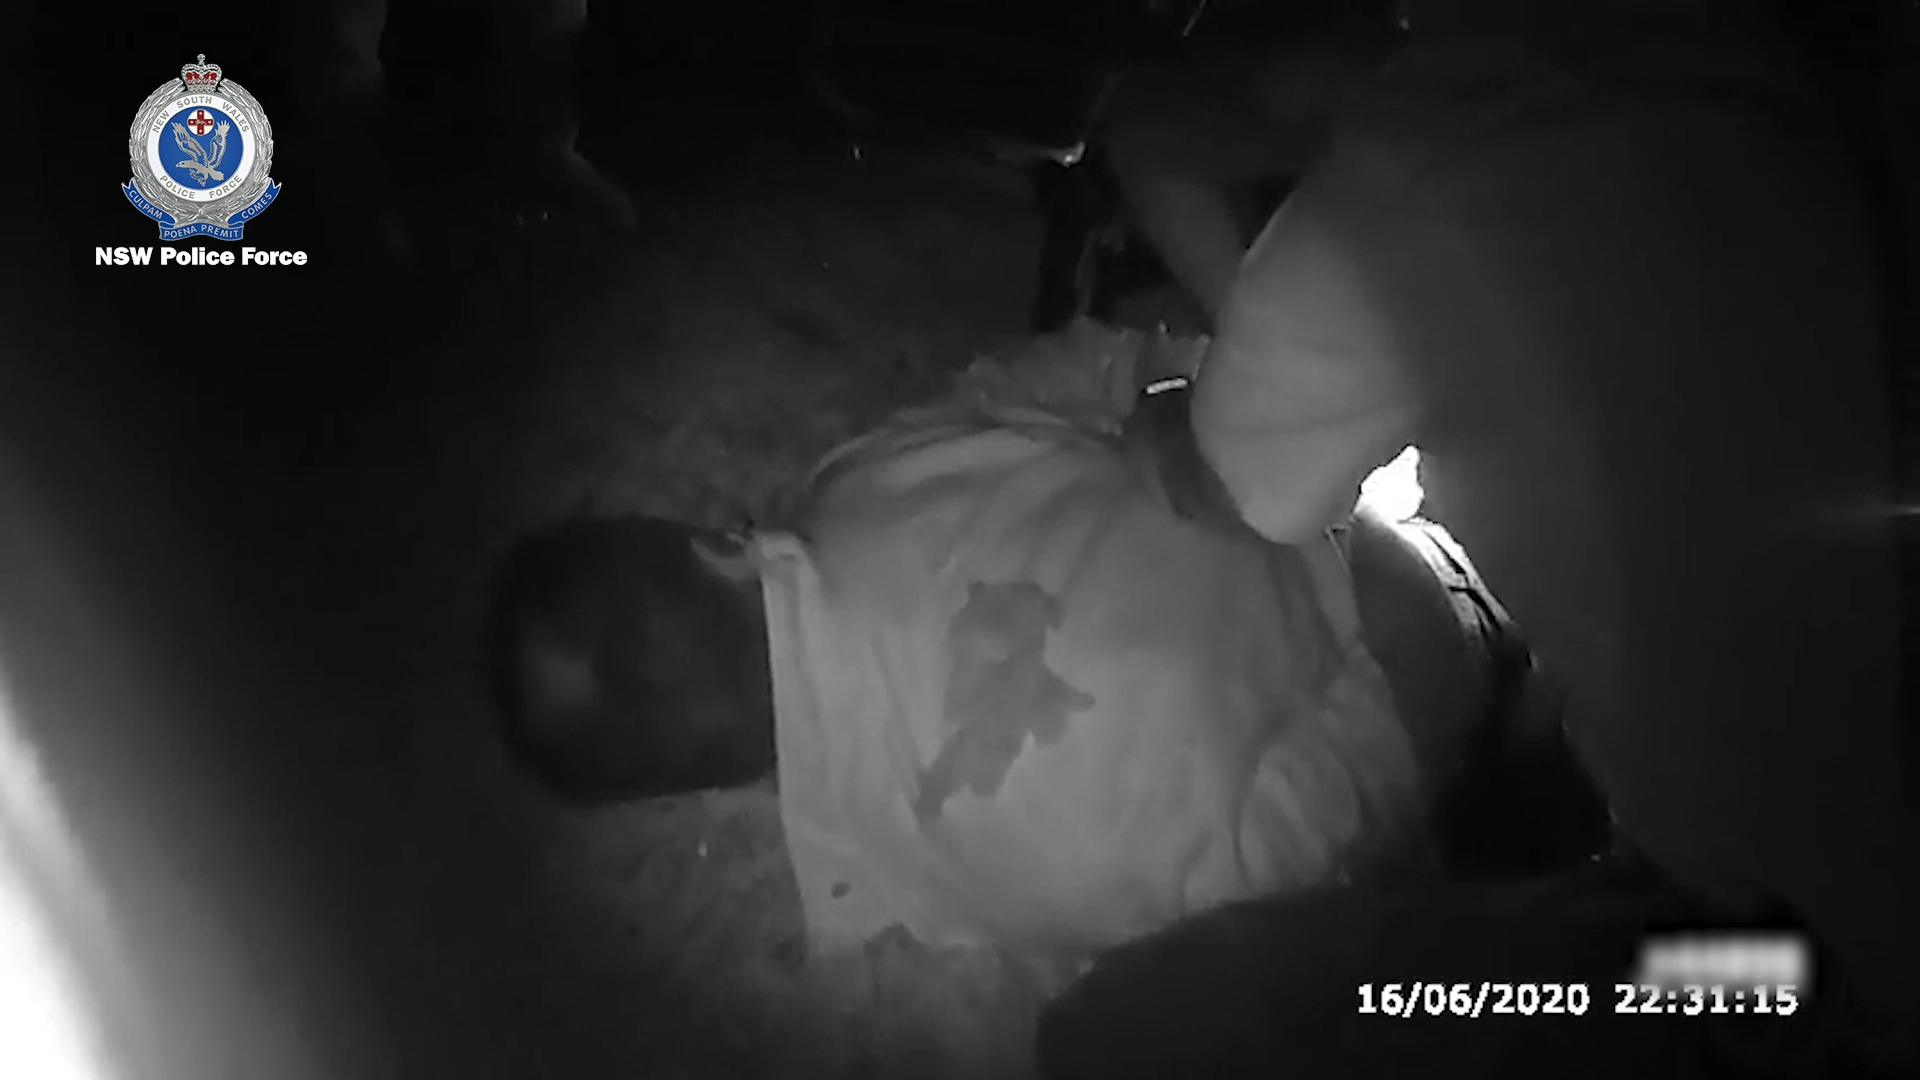 200617 NSW Central Coast police officers assault man arrest charges bodycam footage